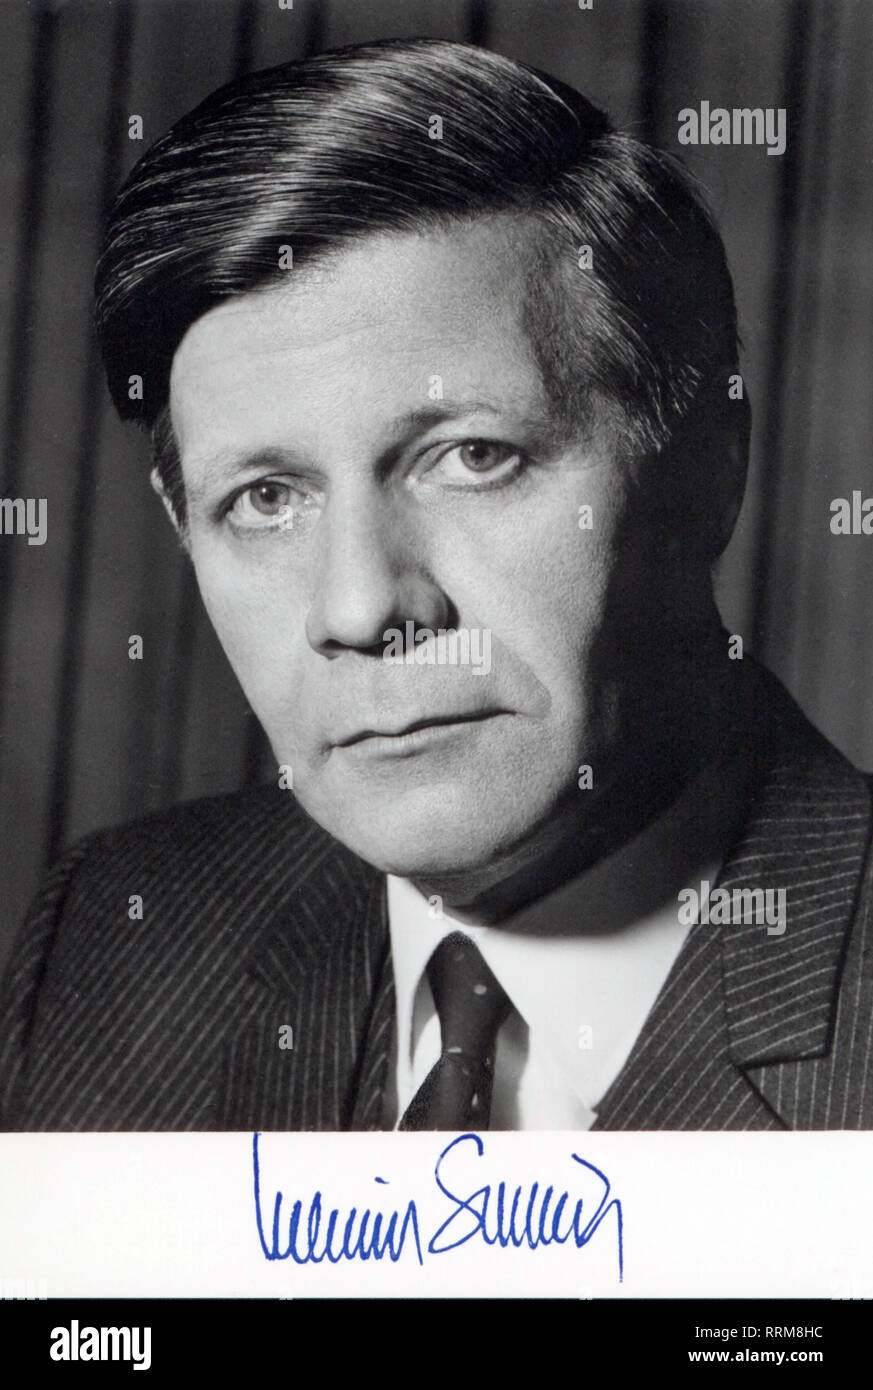 Schmidt, Helmut, * 23.12.1918, German politician (Social Democratic Party of Germany (SPD), Federal Chancellor 16.5.1974 - 1.10 1982, portrait, autograph postcard, early 1970s, Additional-Rights-Clearance-Info-Not-Available - Stock Image